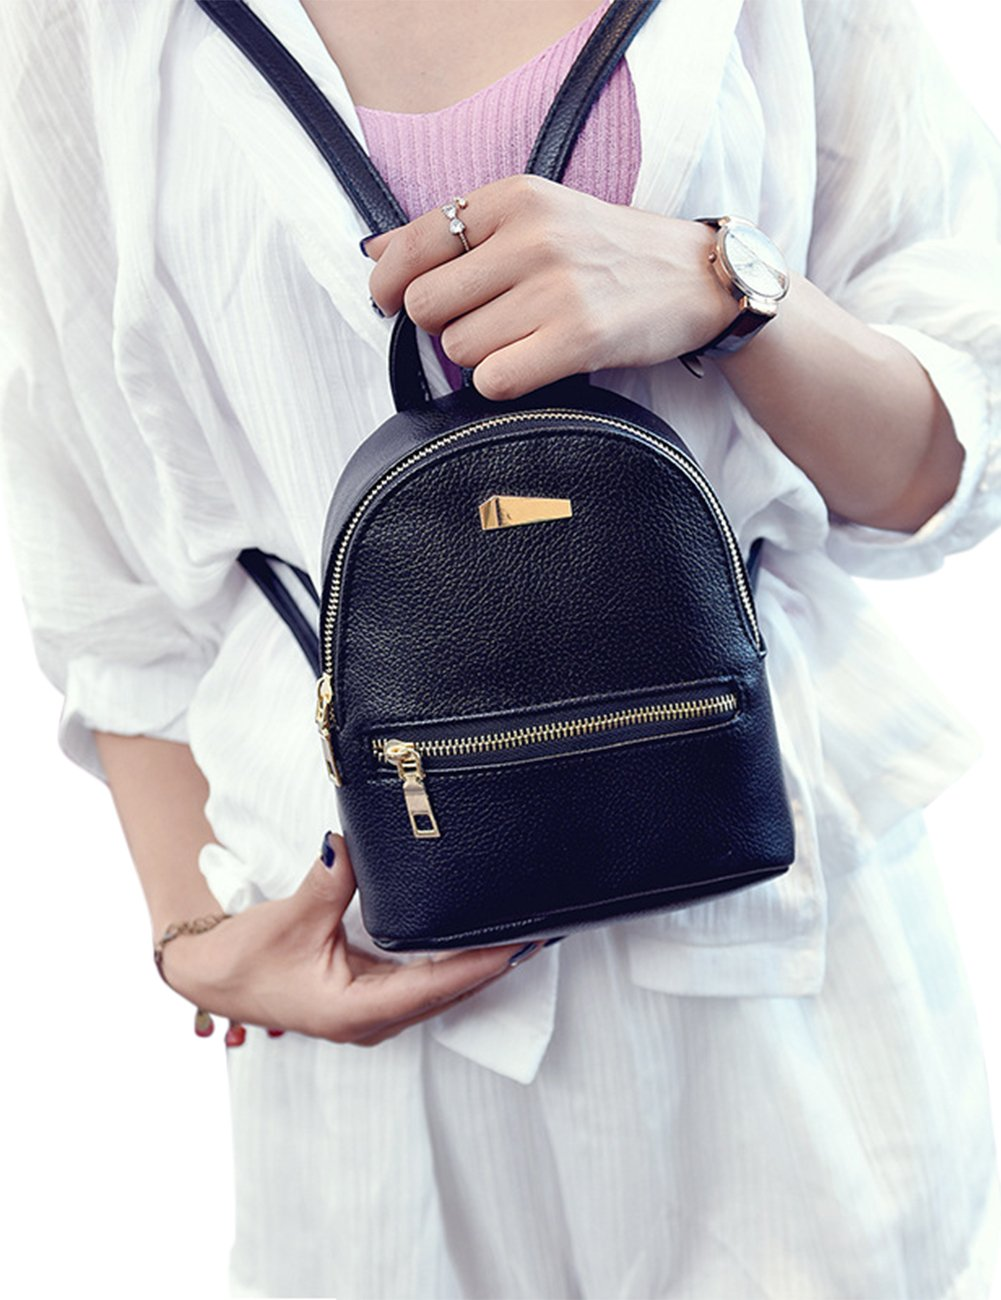 ShiningLove Cute Concise PU Leather Travel Backpack For Teenagers Girls Candy Color Shoulder Bag Casual Daypack Black